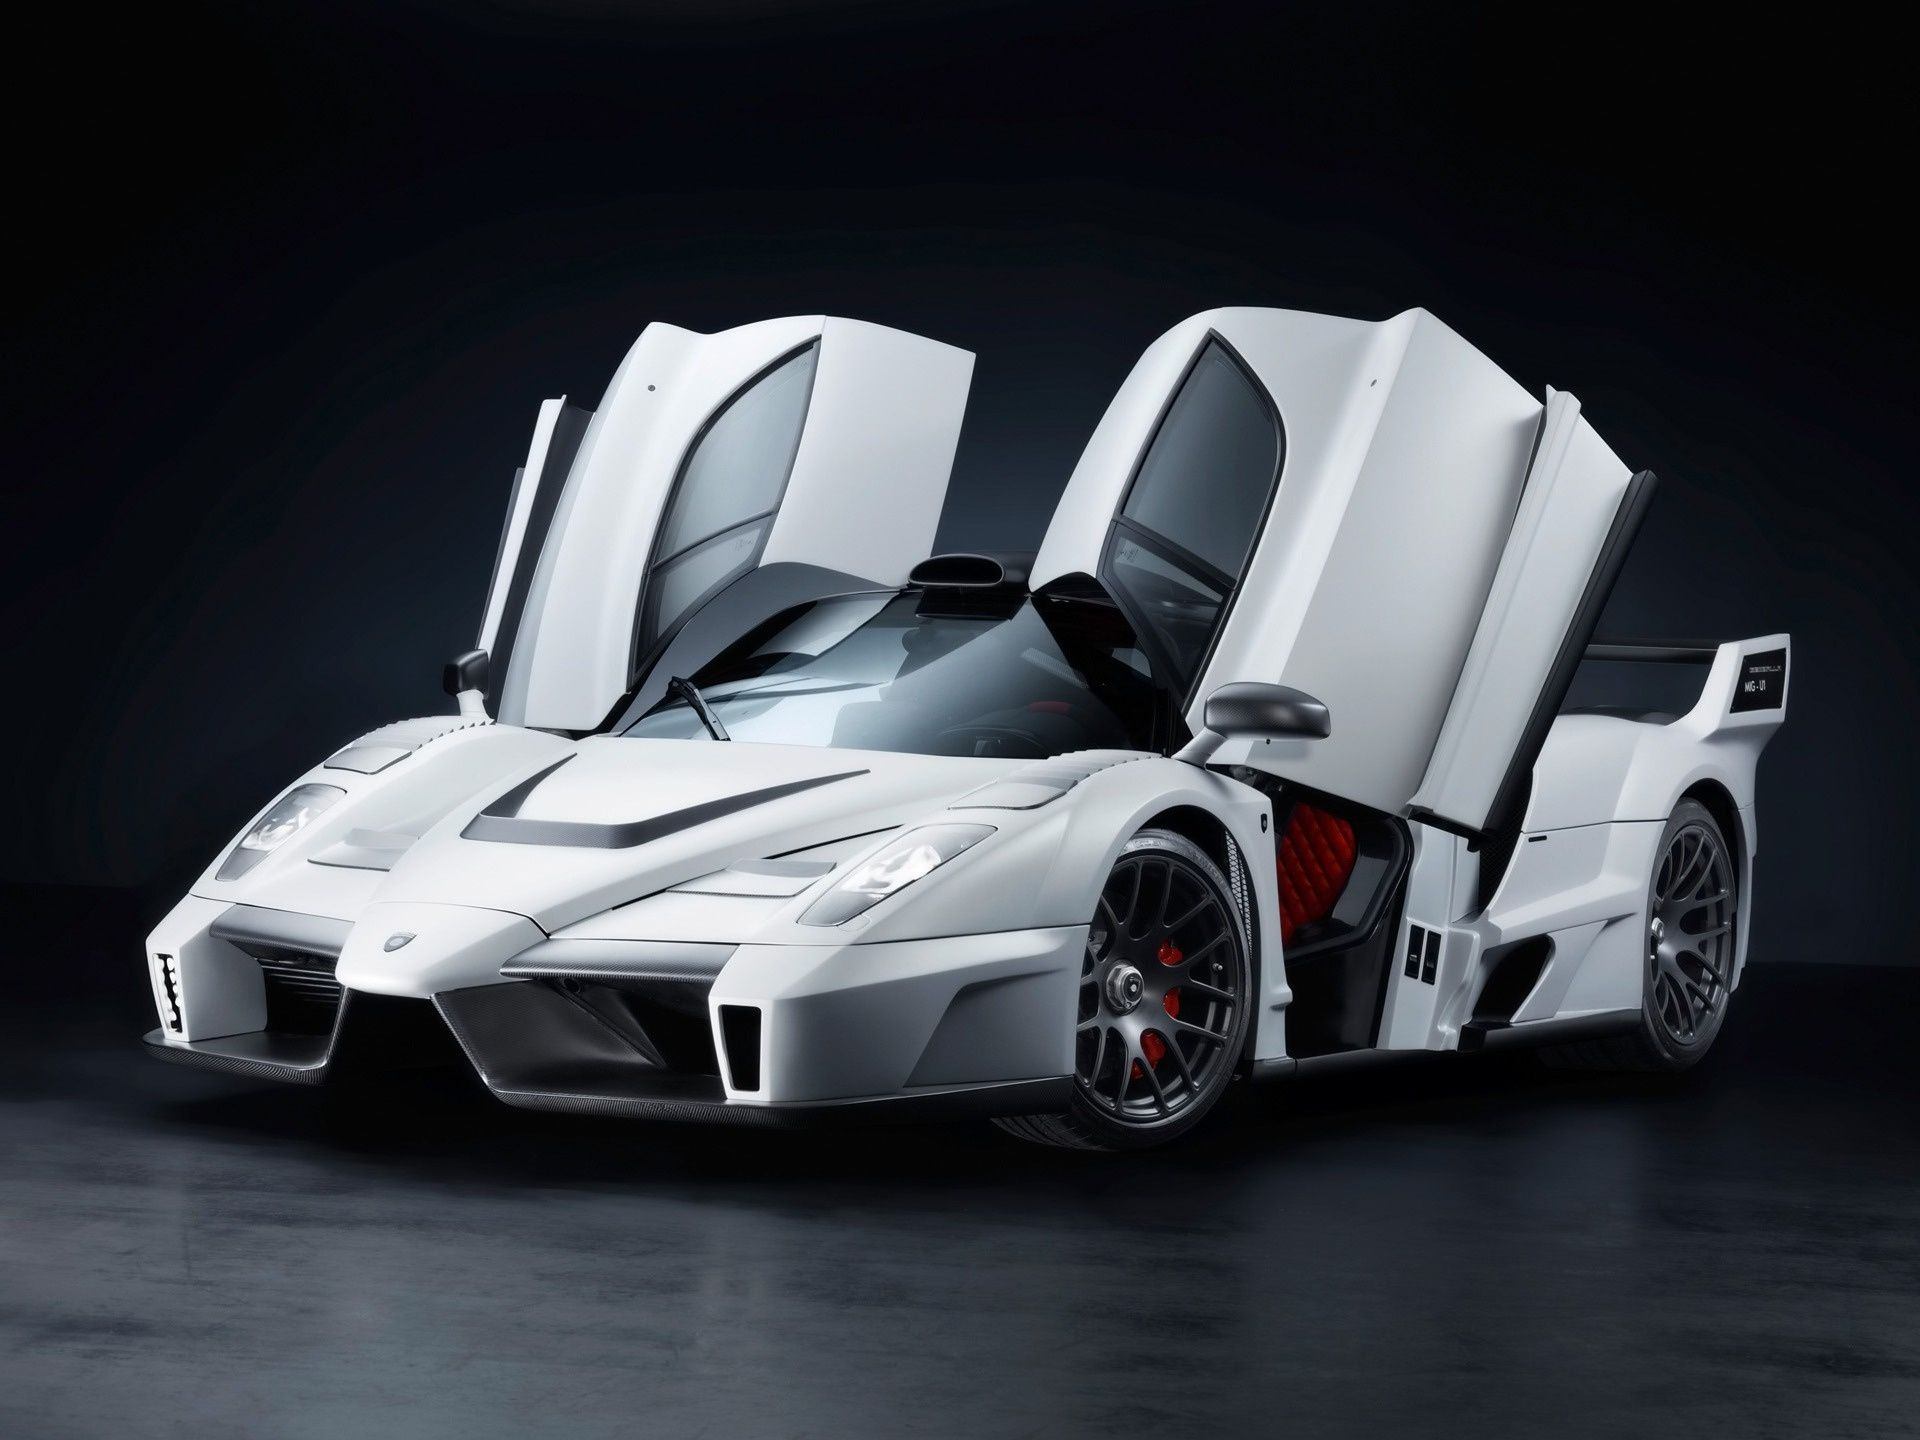 Gemballa Mig U1 Ferrari Enzo Is It A Car Or A Transformer With Images Sports Car Wallpaper Super Sport Cars Ferrari Car